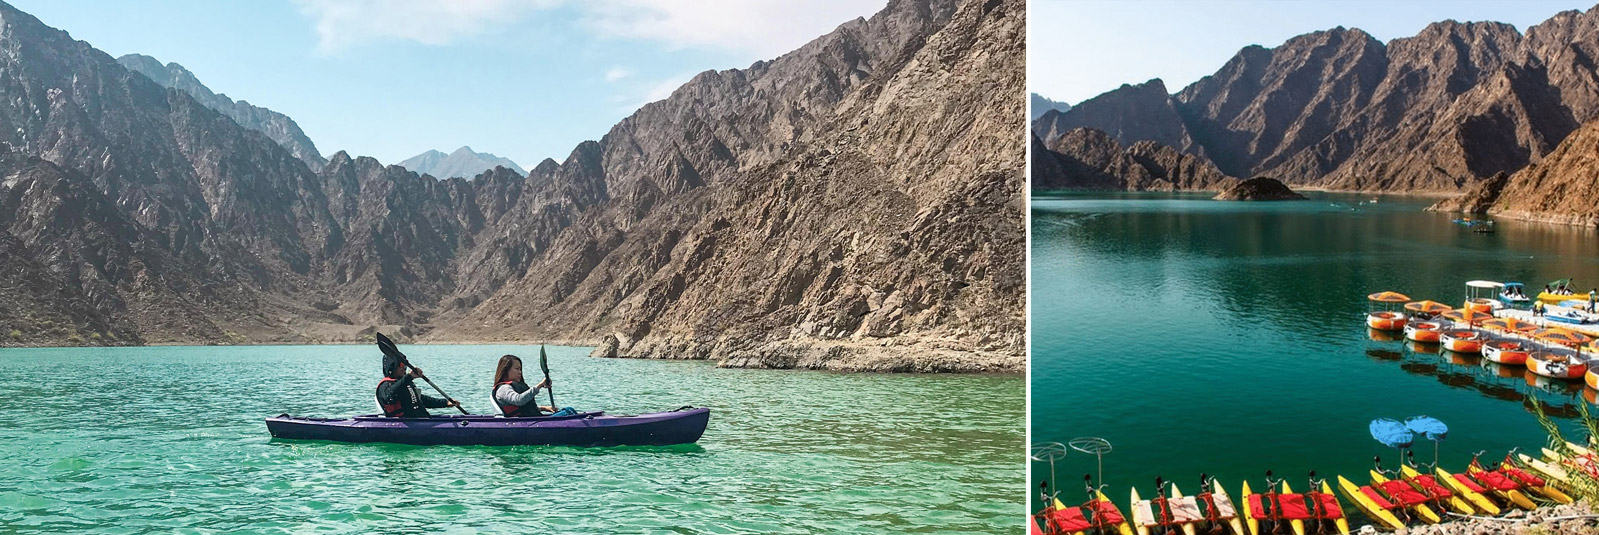 hatta-mountain-tour-boat-ride